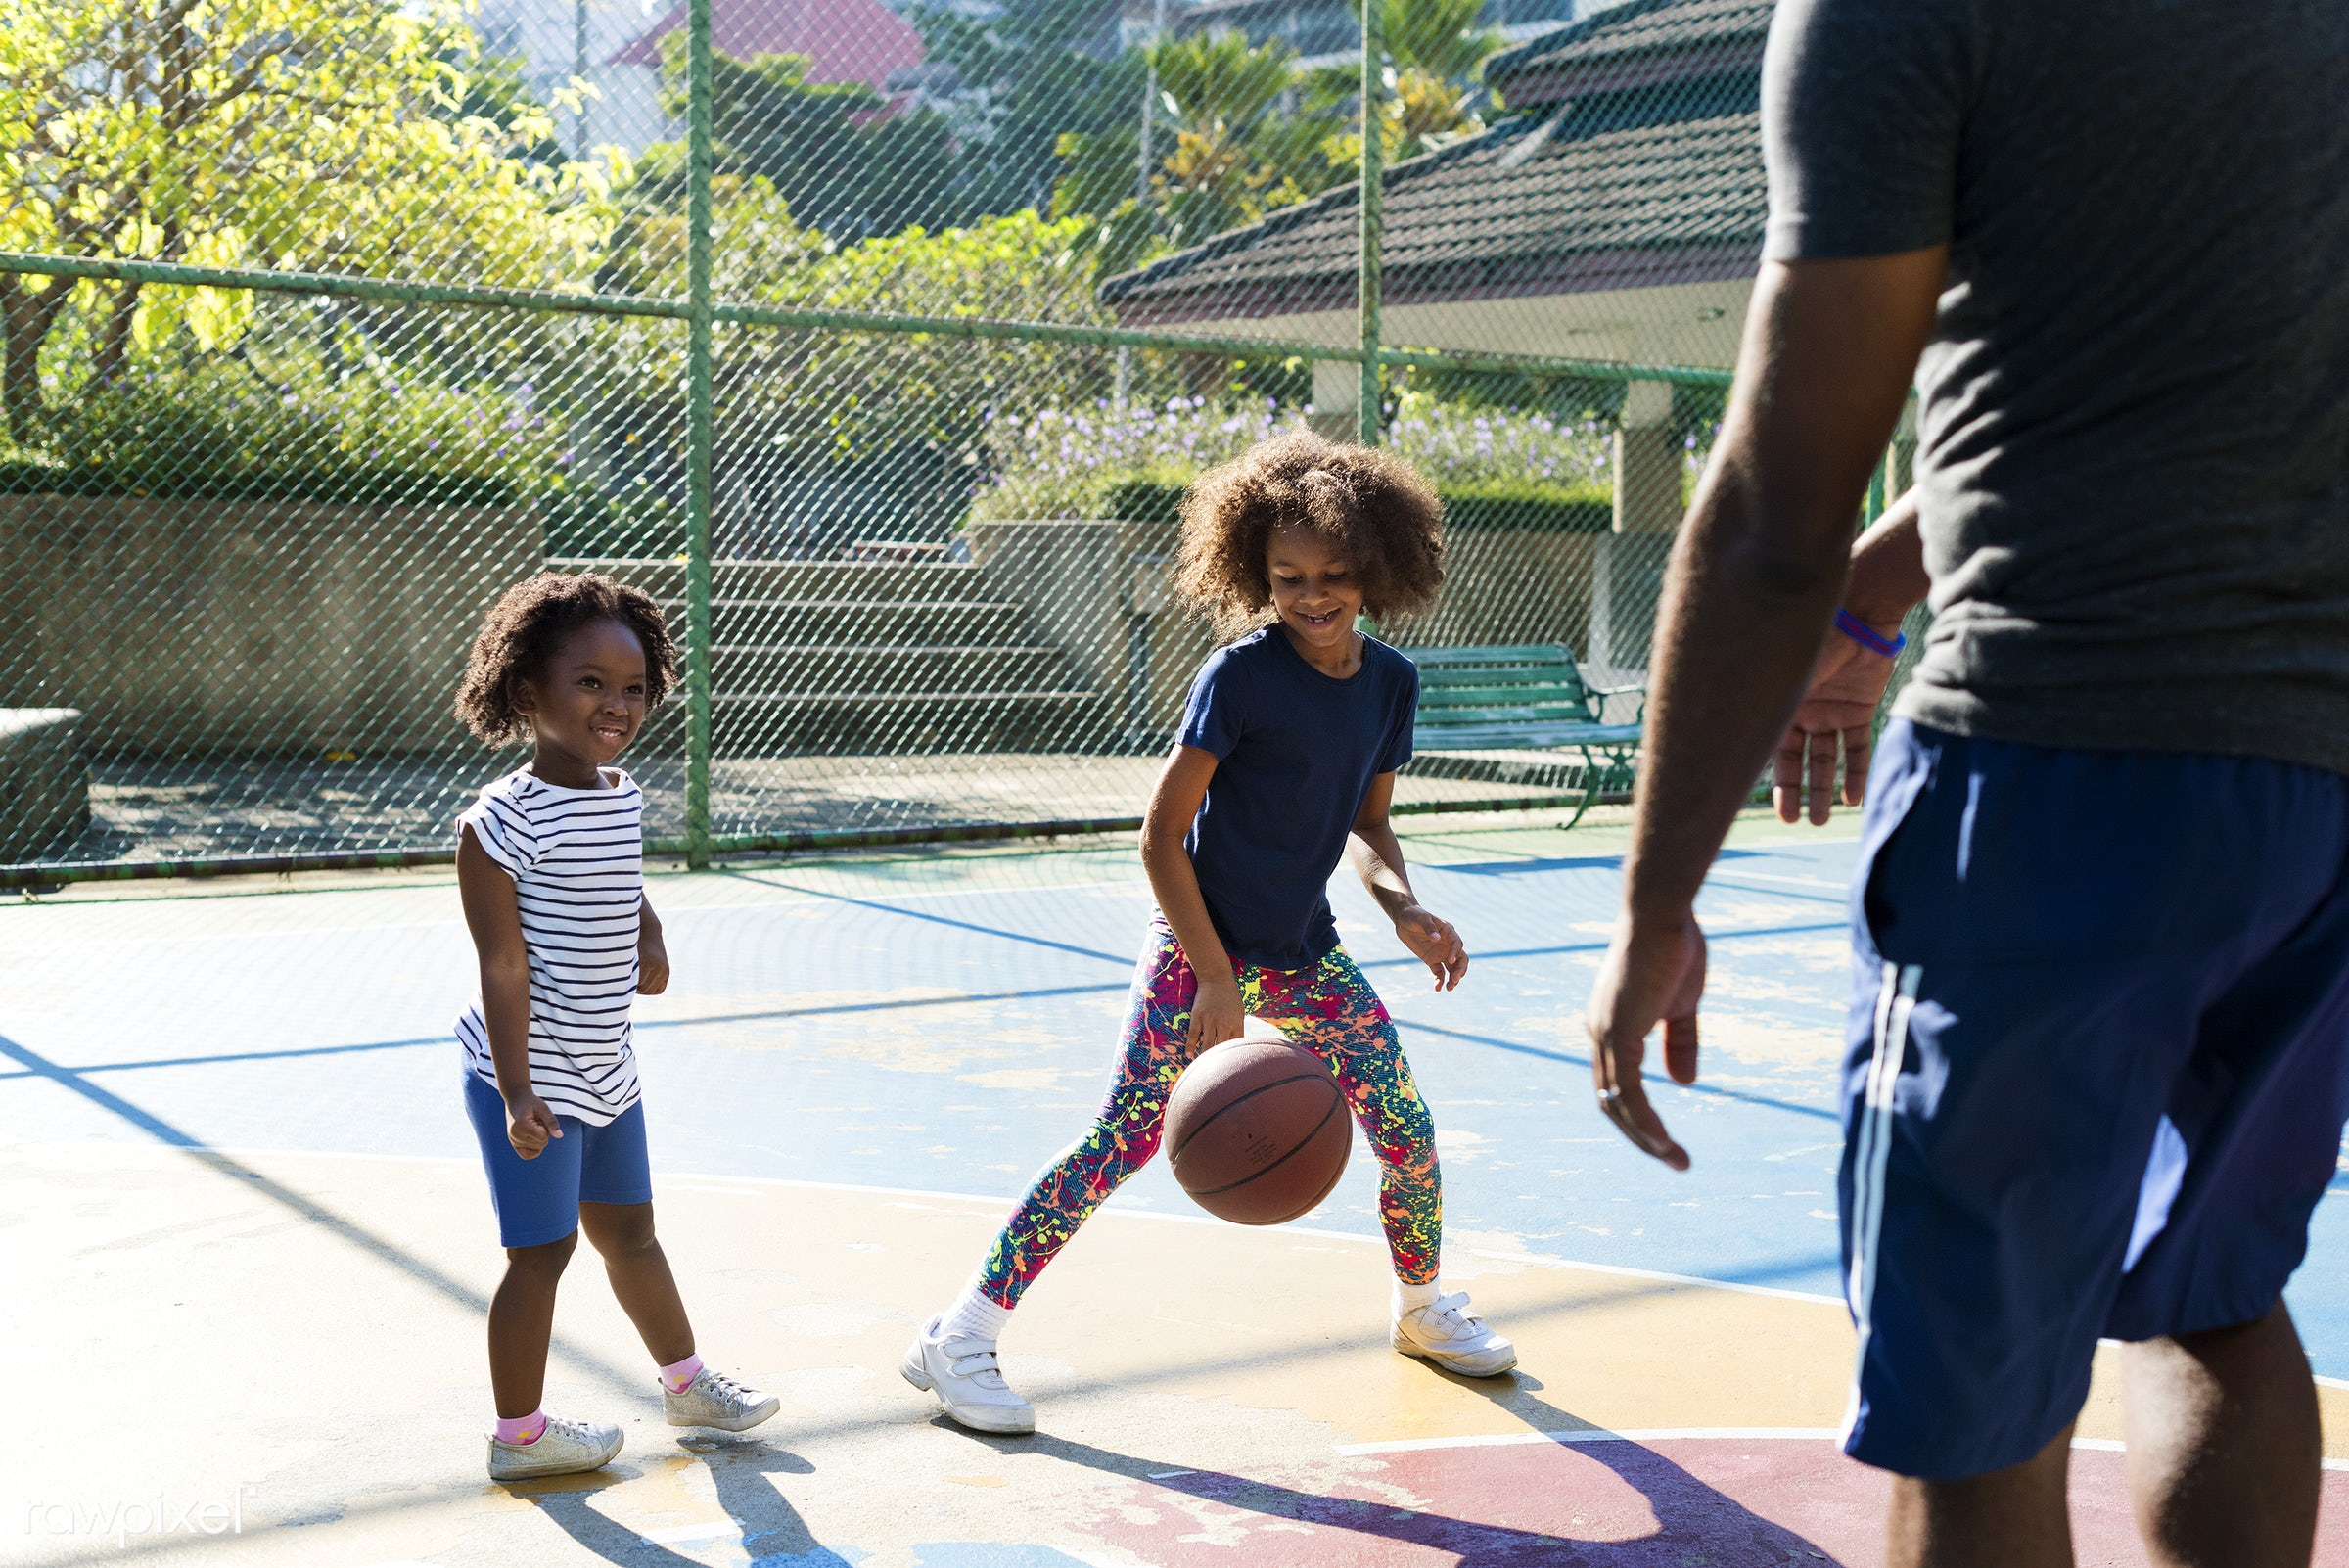 basketball, athletics, player, african, street, court, exercise, recreation, sister, arena, family, activity, athlete, ball...